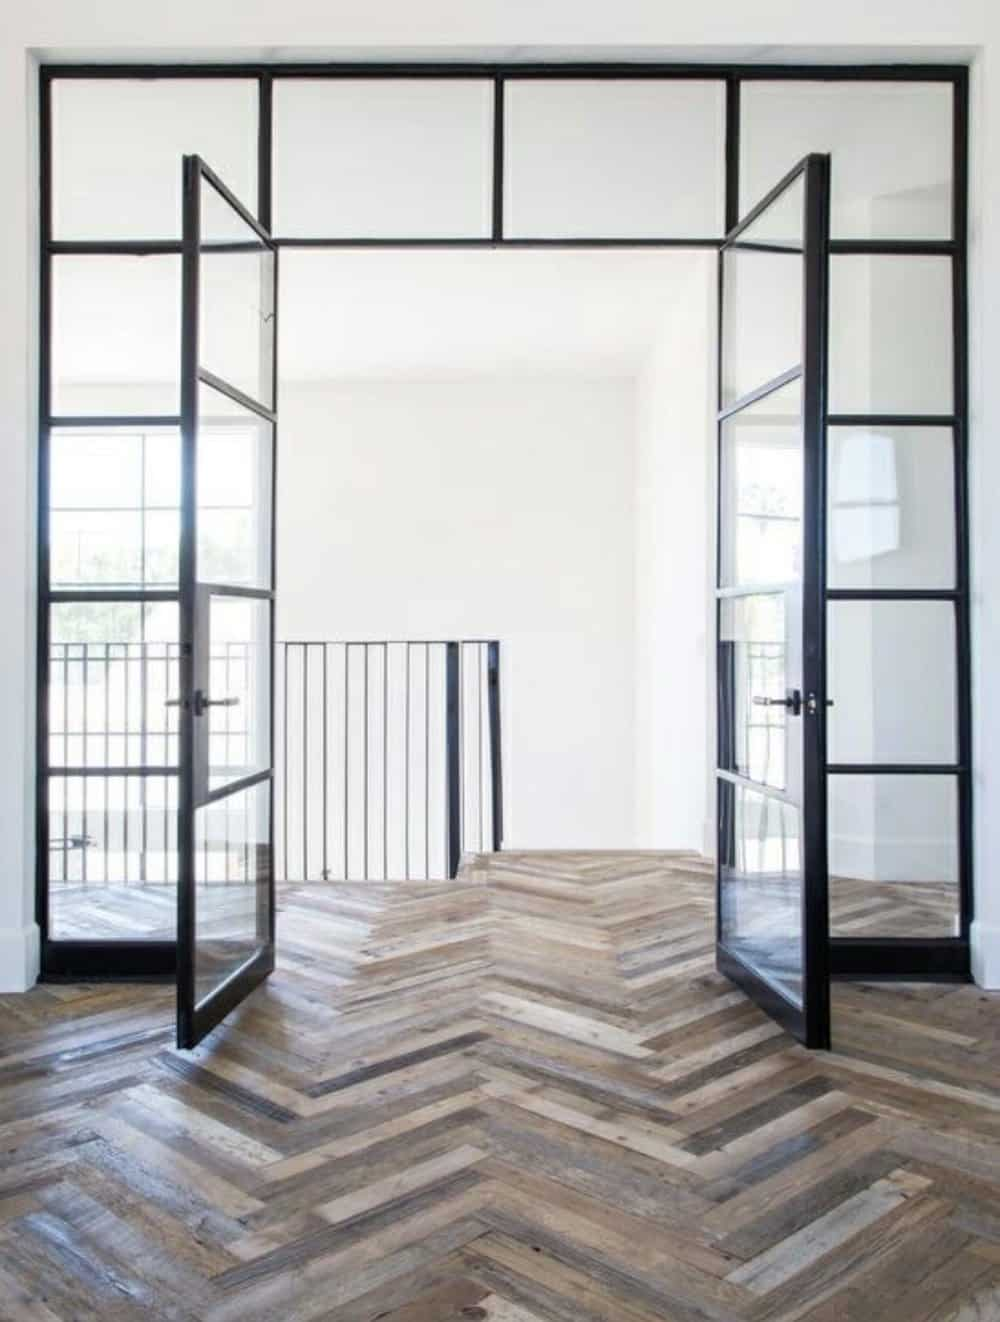 steel and glass french doors with herringbone wood flooring